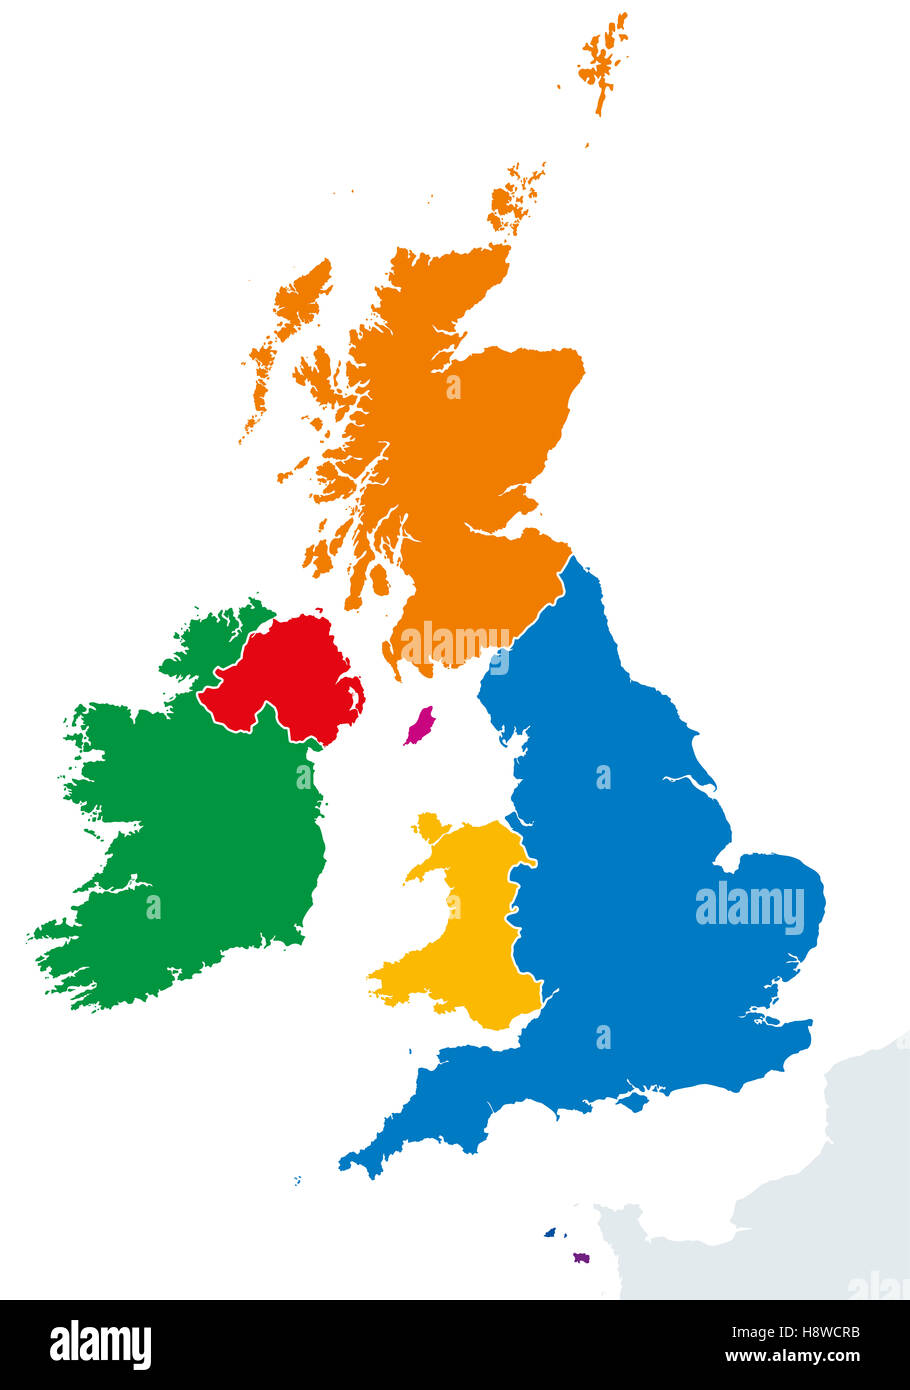 British isles countries silhouettes map ireland and united kingdom british isles countries silhouettes map ireland and united kingdom countries england scotland wales and northern ireland gumiabroncs Choice Image